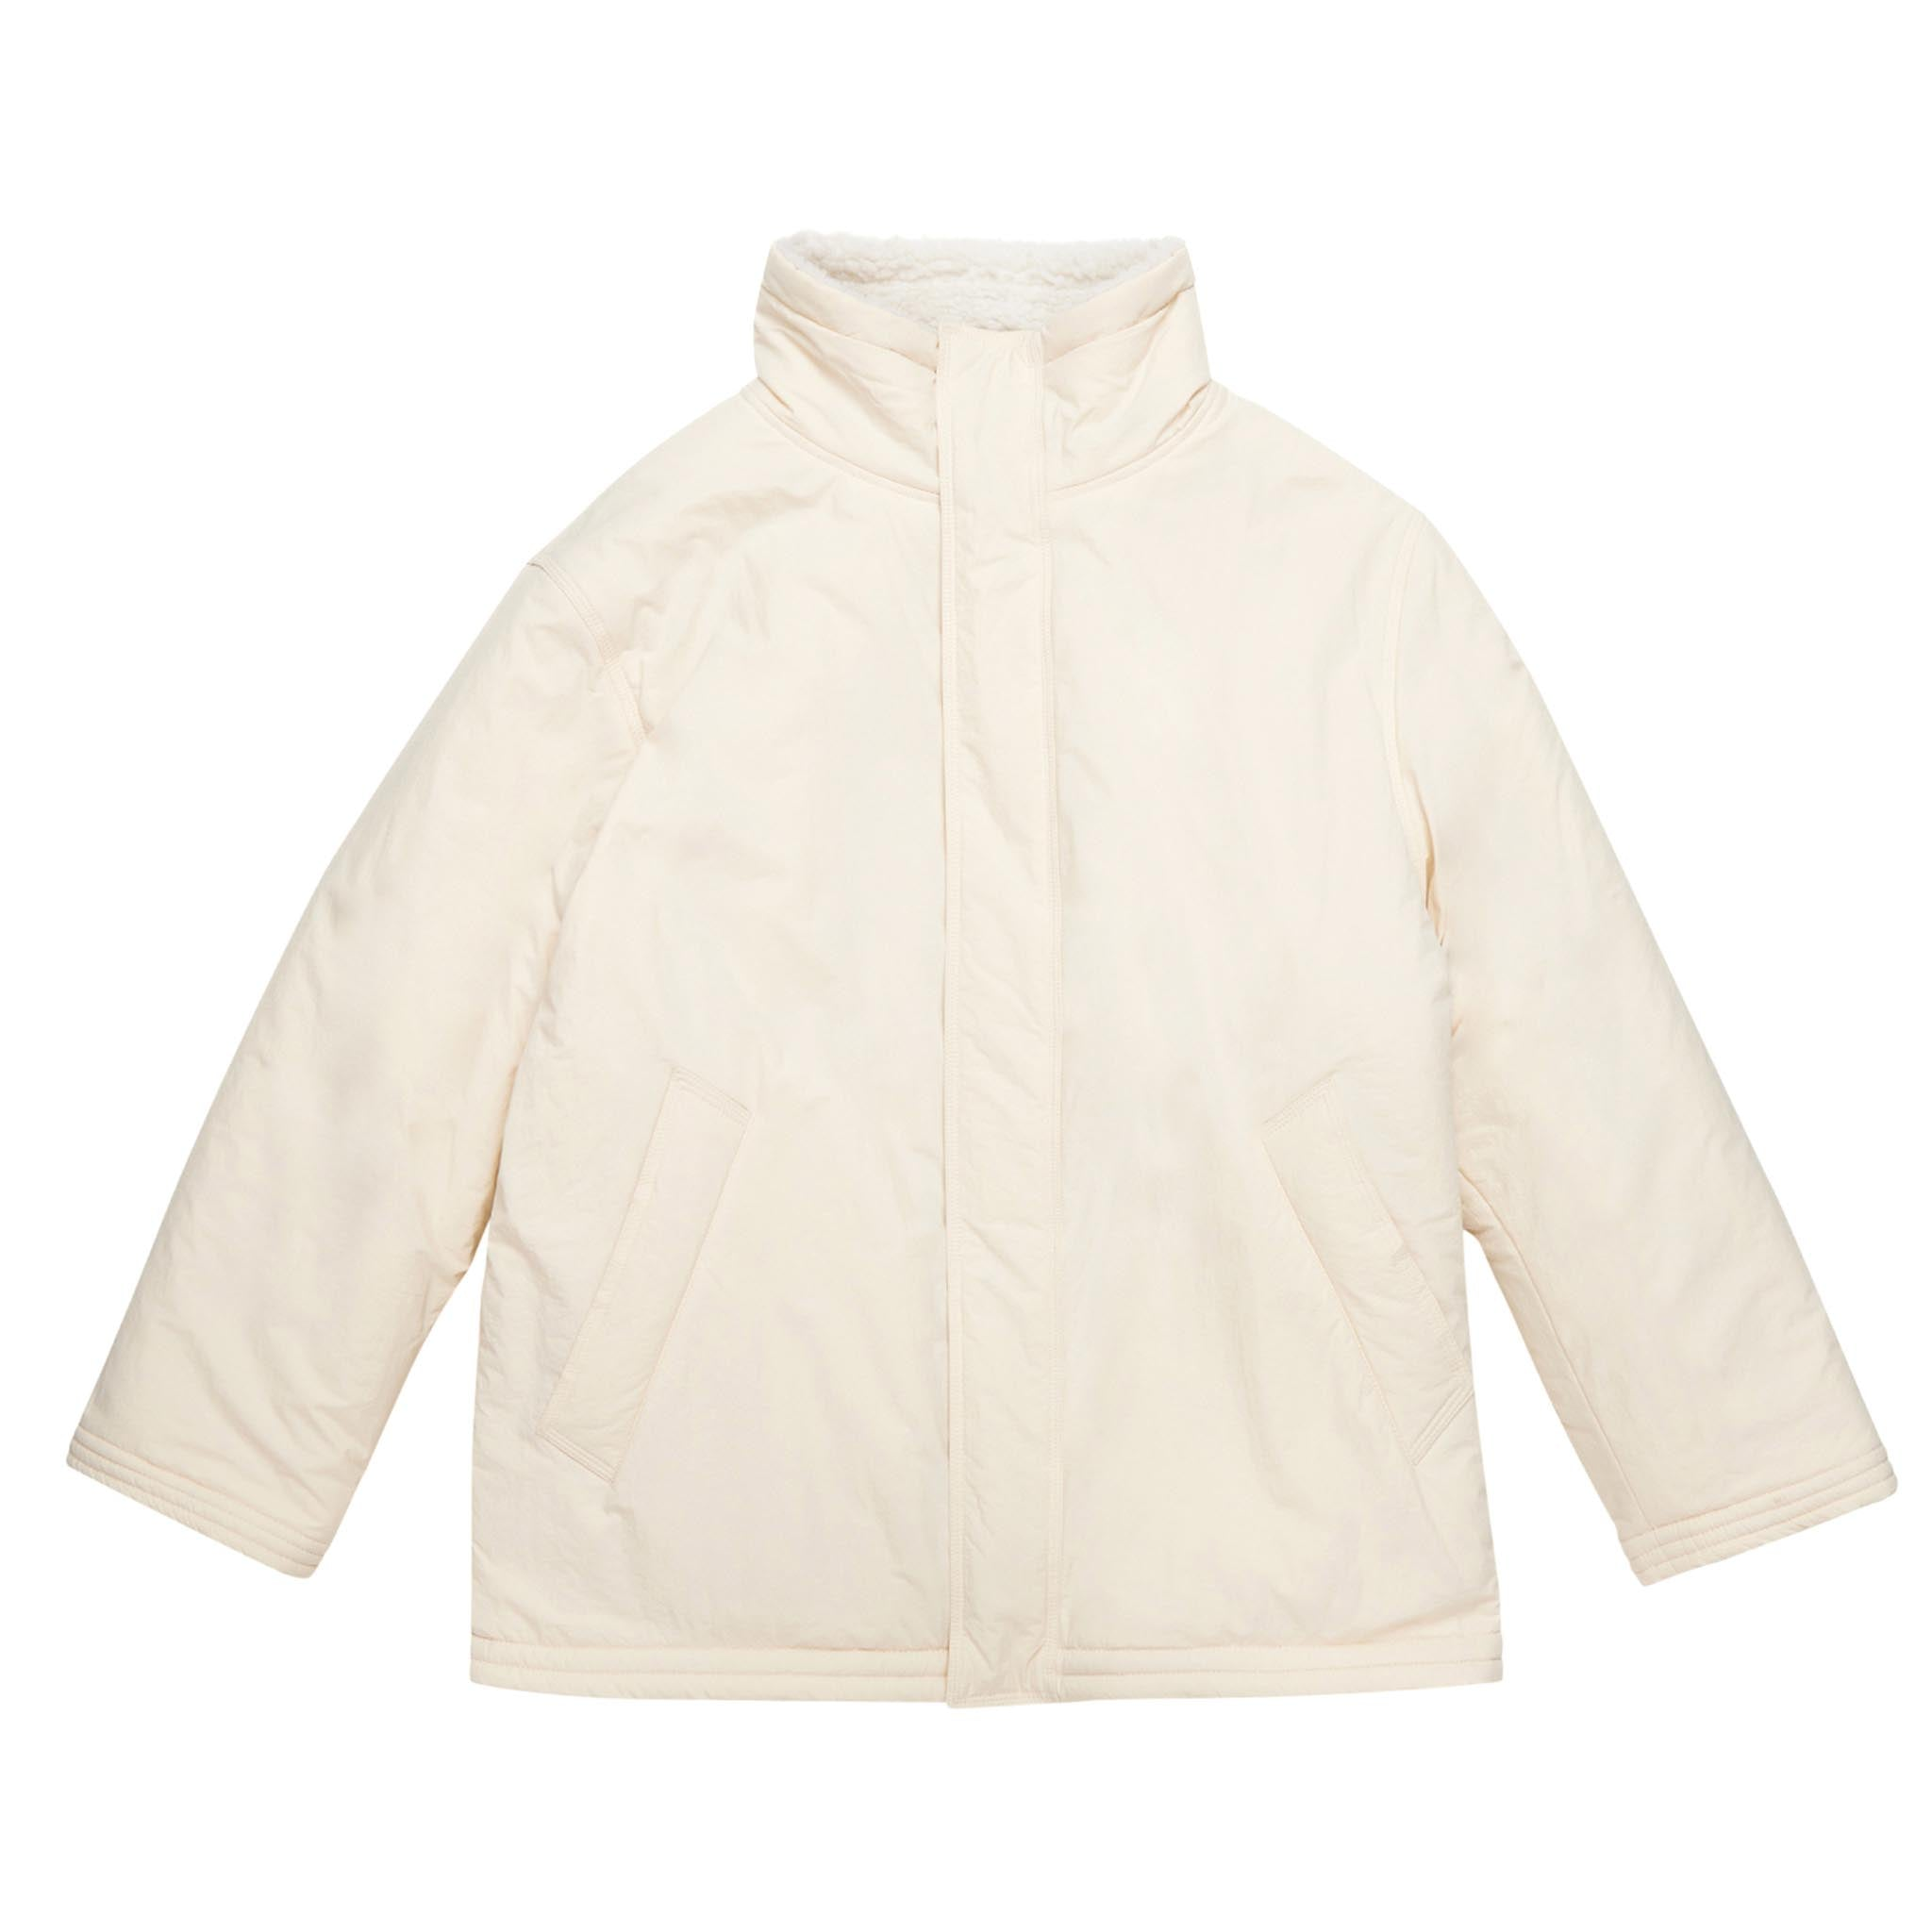 ADD Reversible Dumble Oversized Jacket Ivory